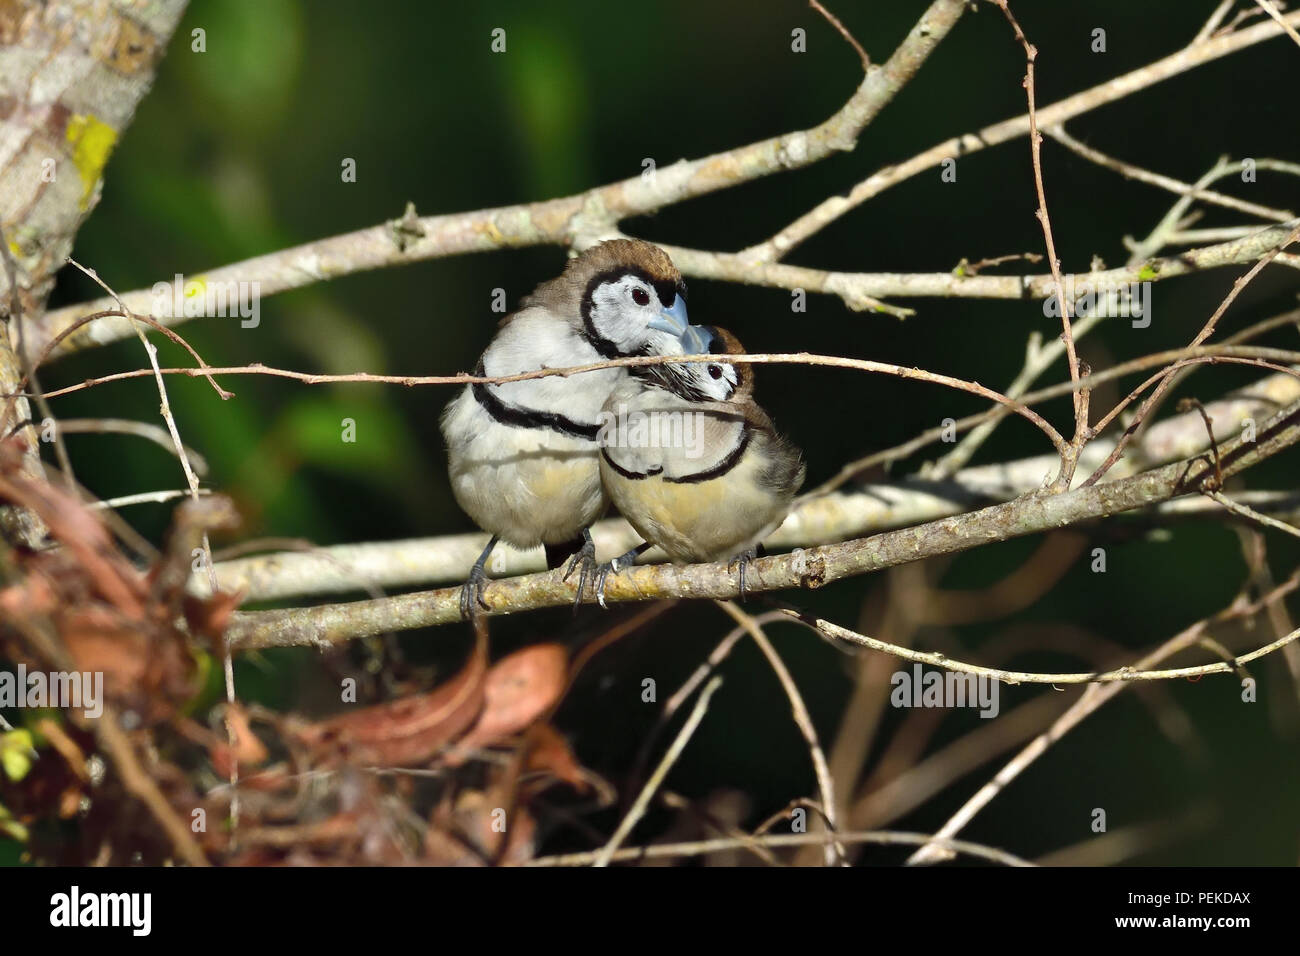 Two Australian, Queensland Double-barred Finches ( Taeniopygia bichenovii ) taking turns at preening each other - Stock Image